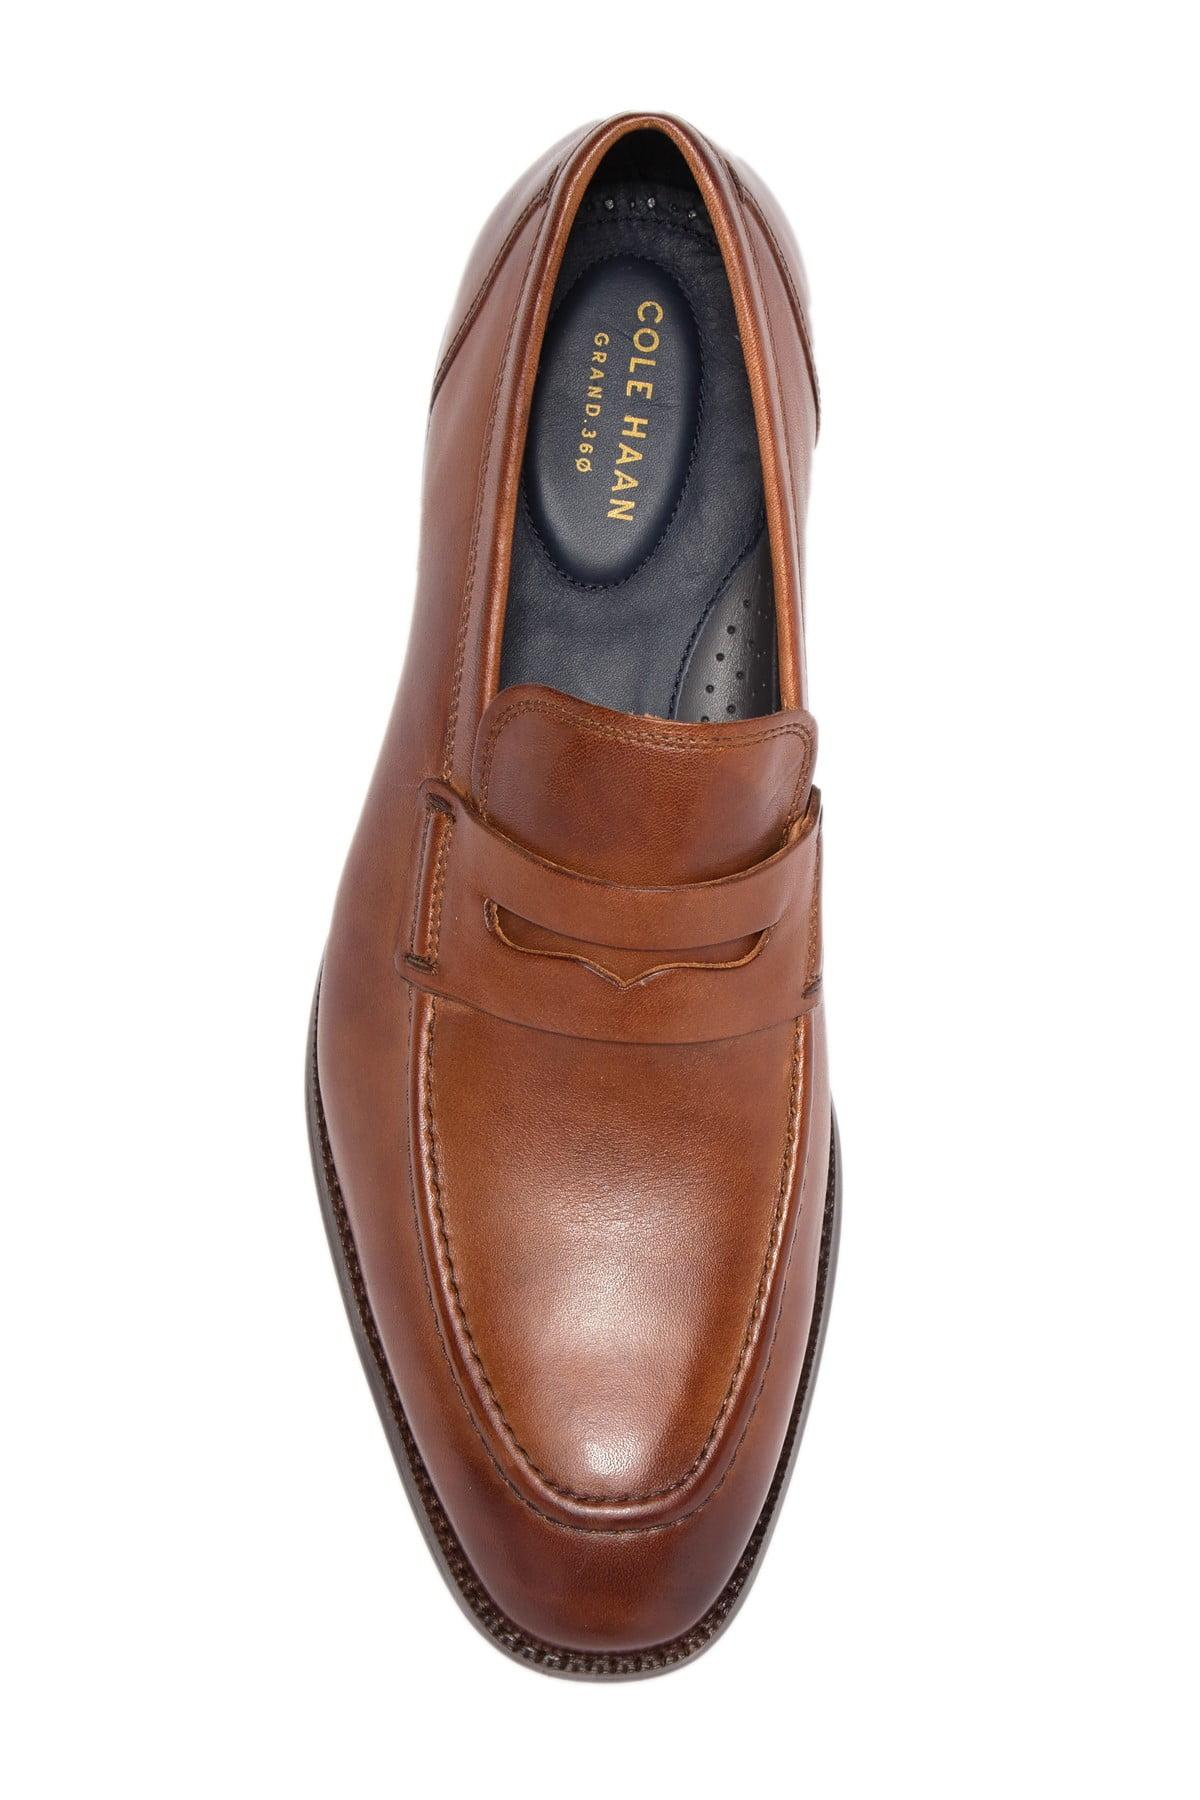 Cole Haan Leather Benton Penny Loafer